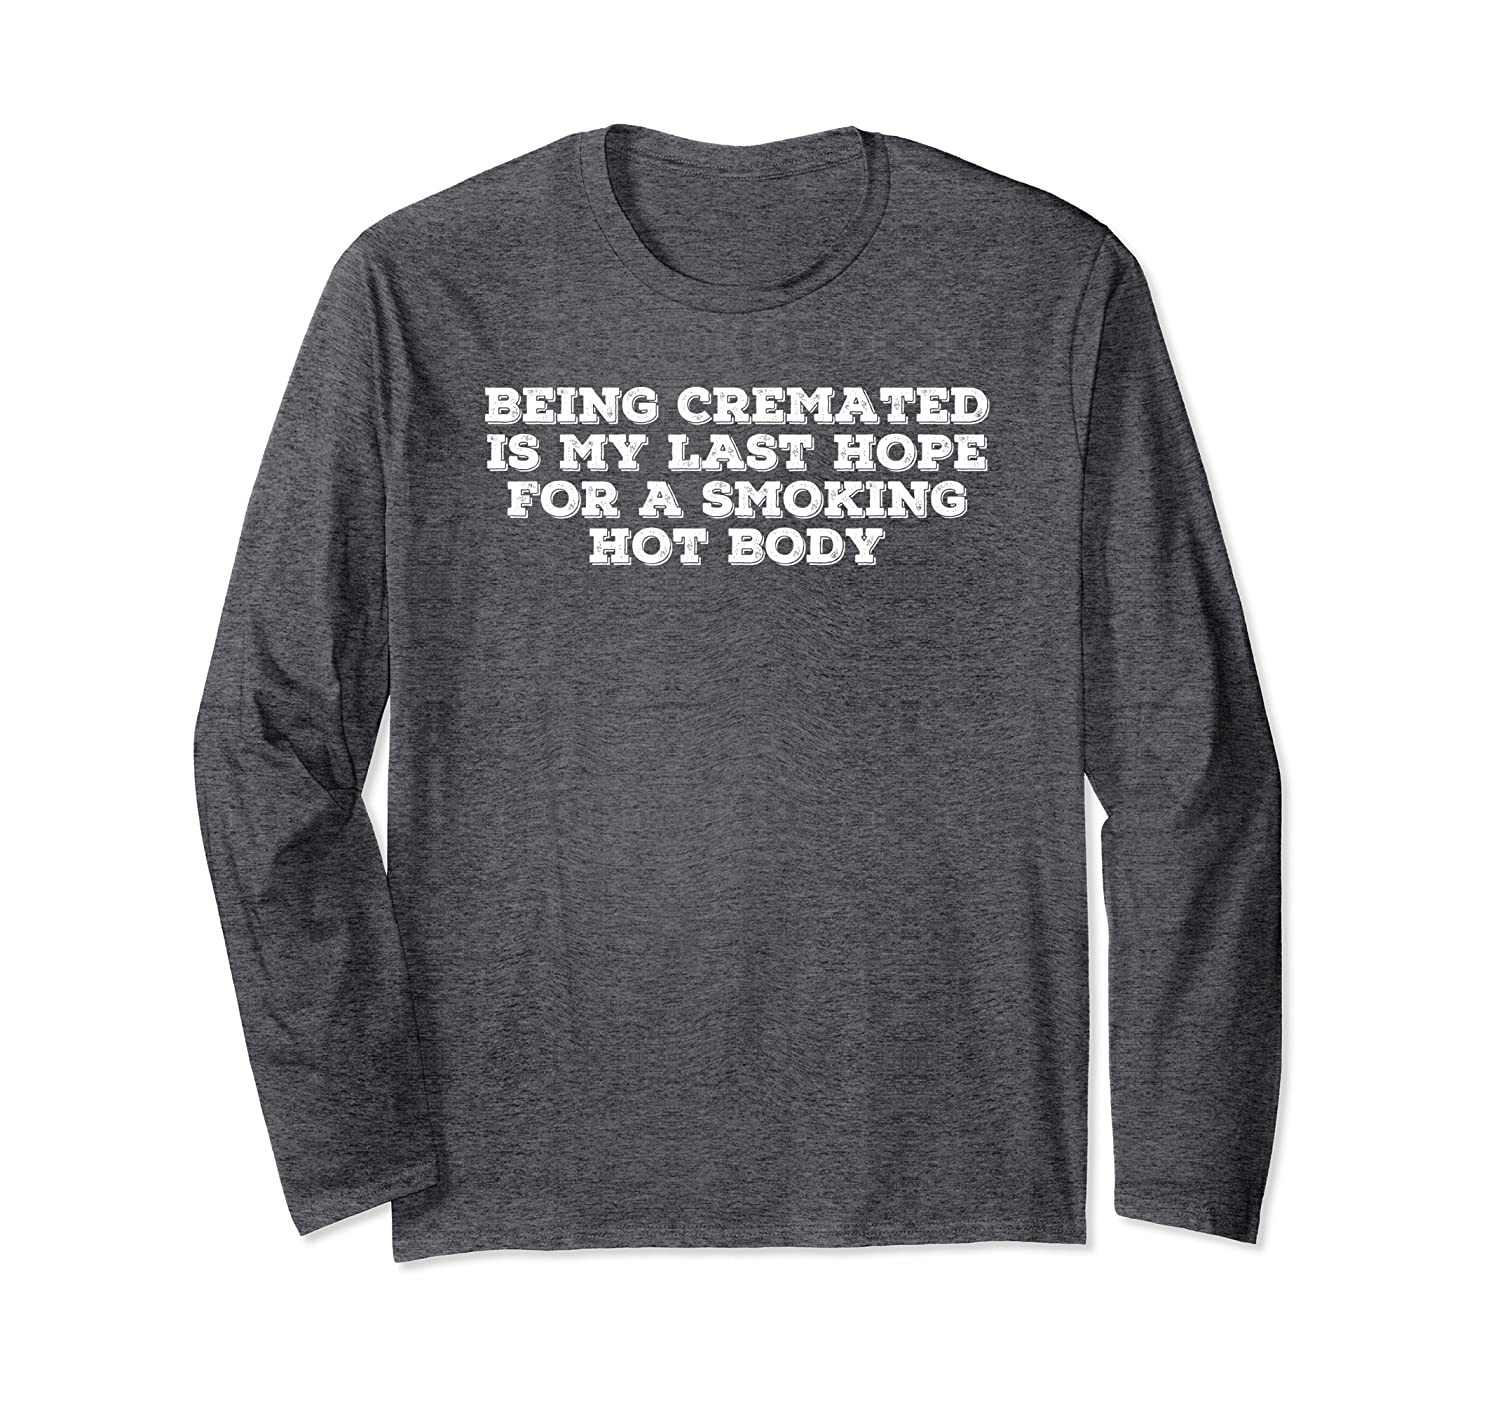 BEING CREMATED LAST HOPE FOR SMOKING HOT BODY Funny Gift Long Sleeve T-Shirt-Awarplus